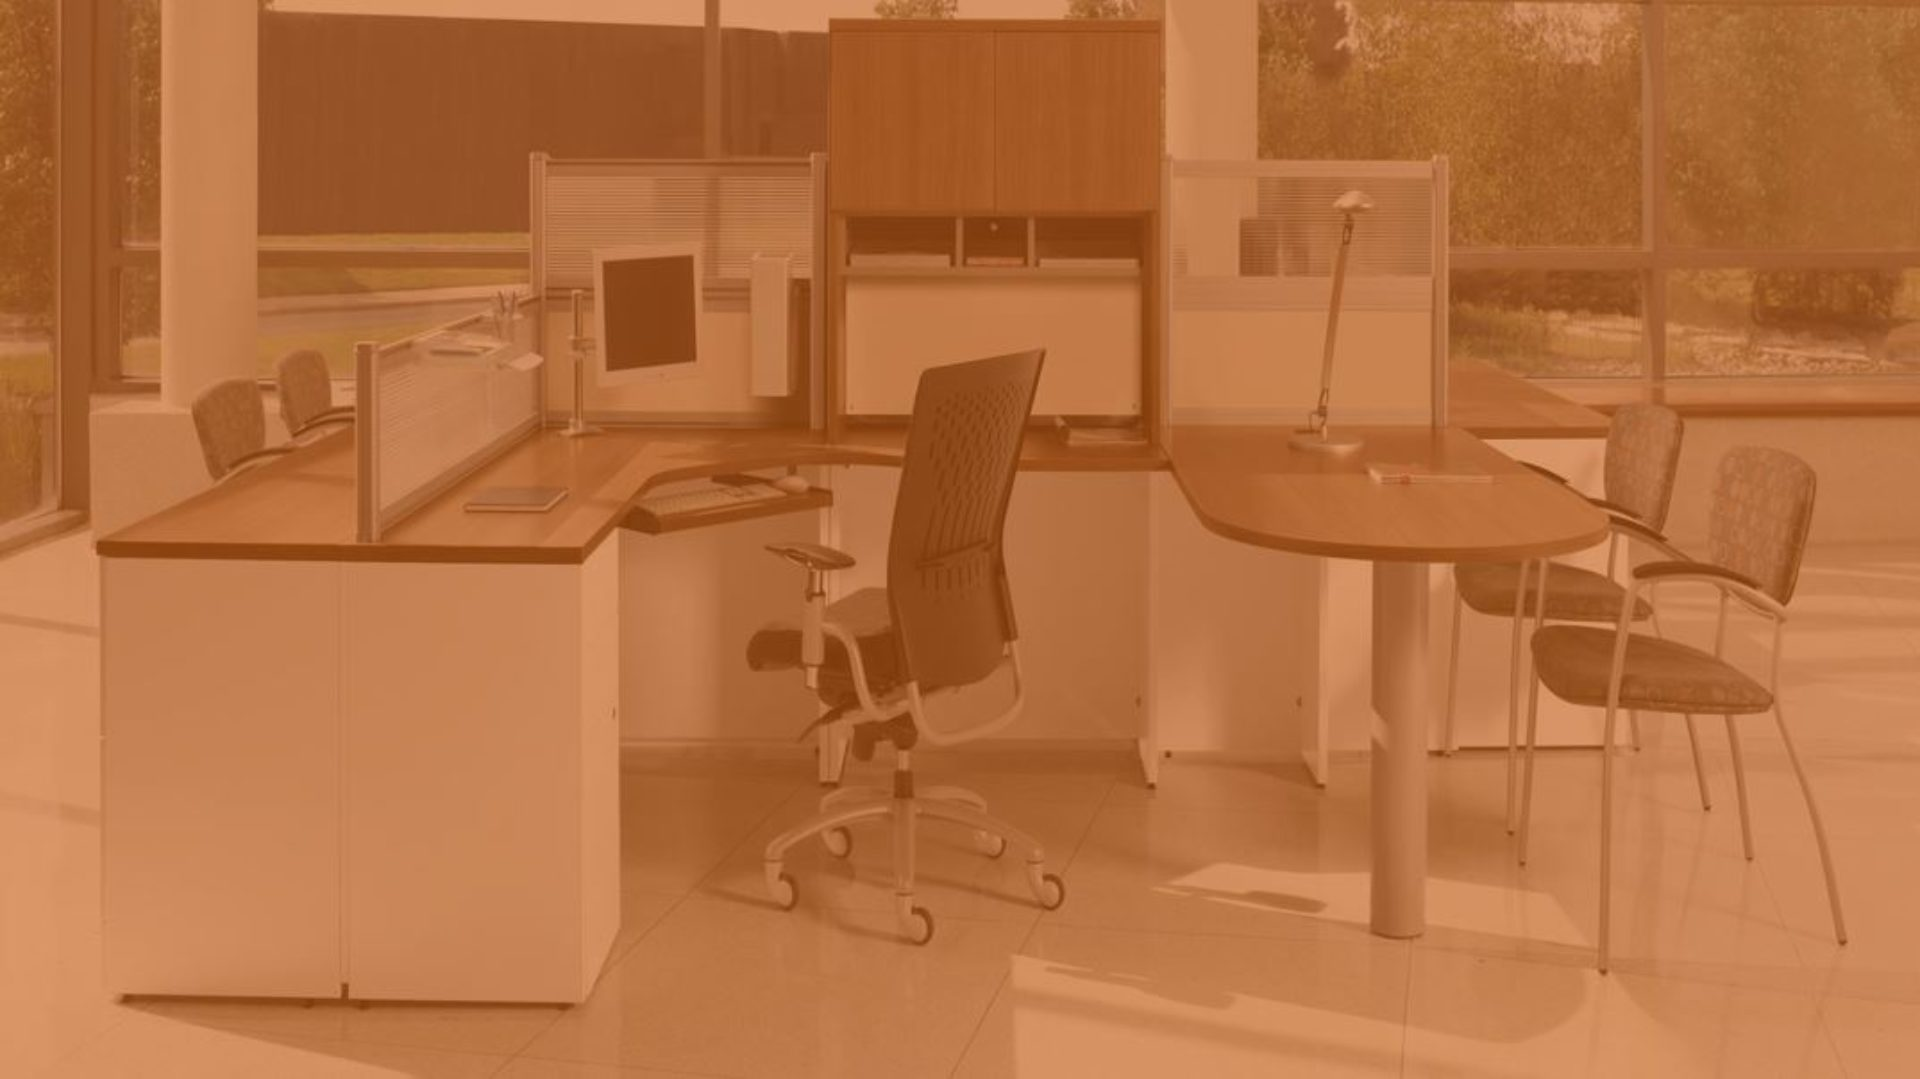 C.B.S. Office Products